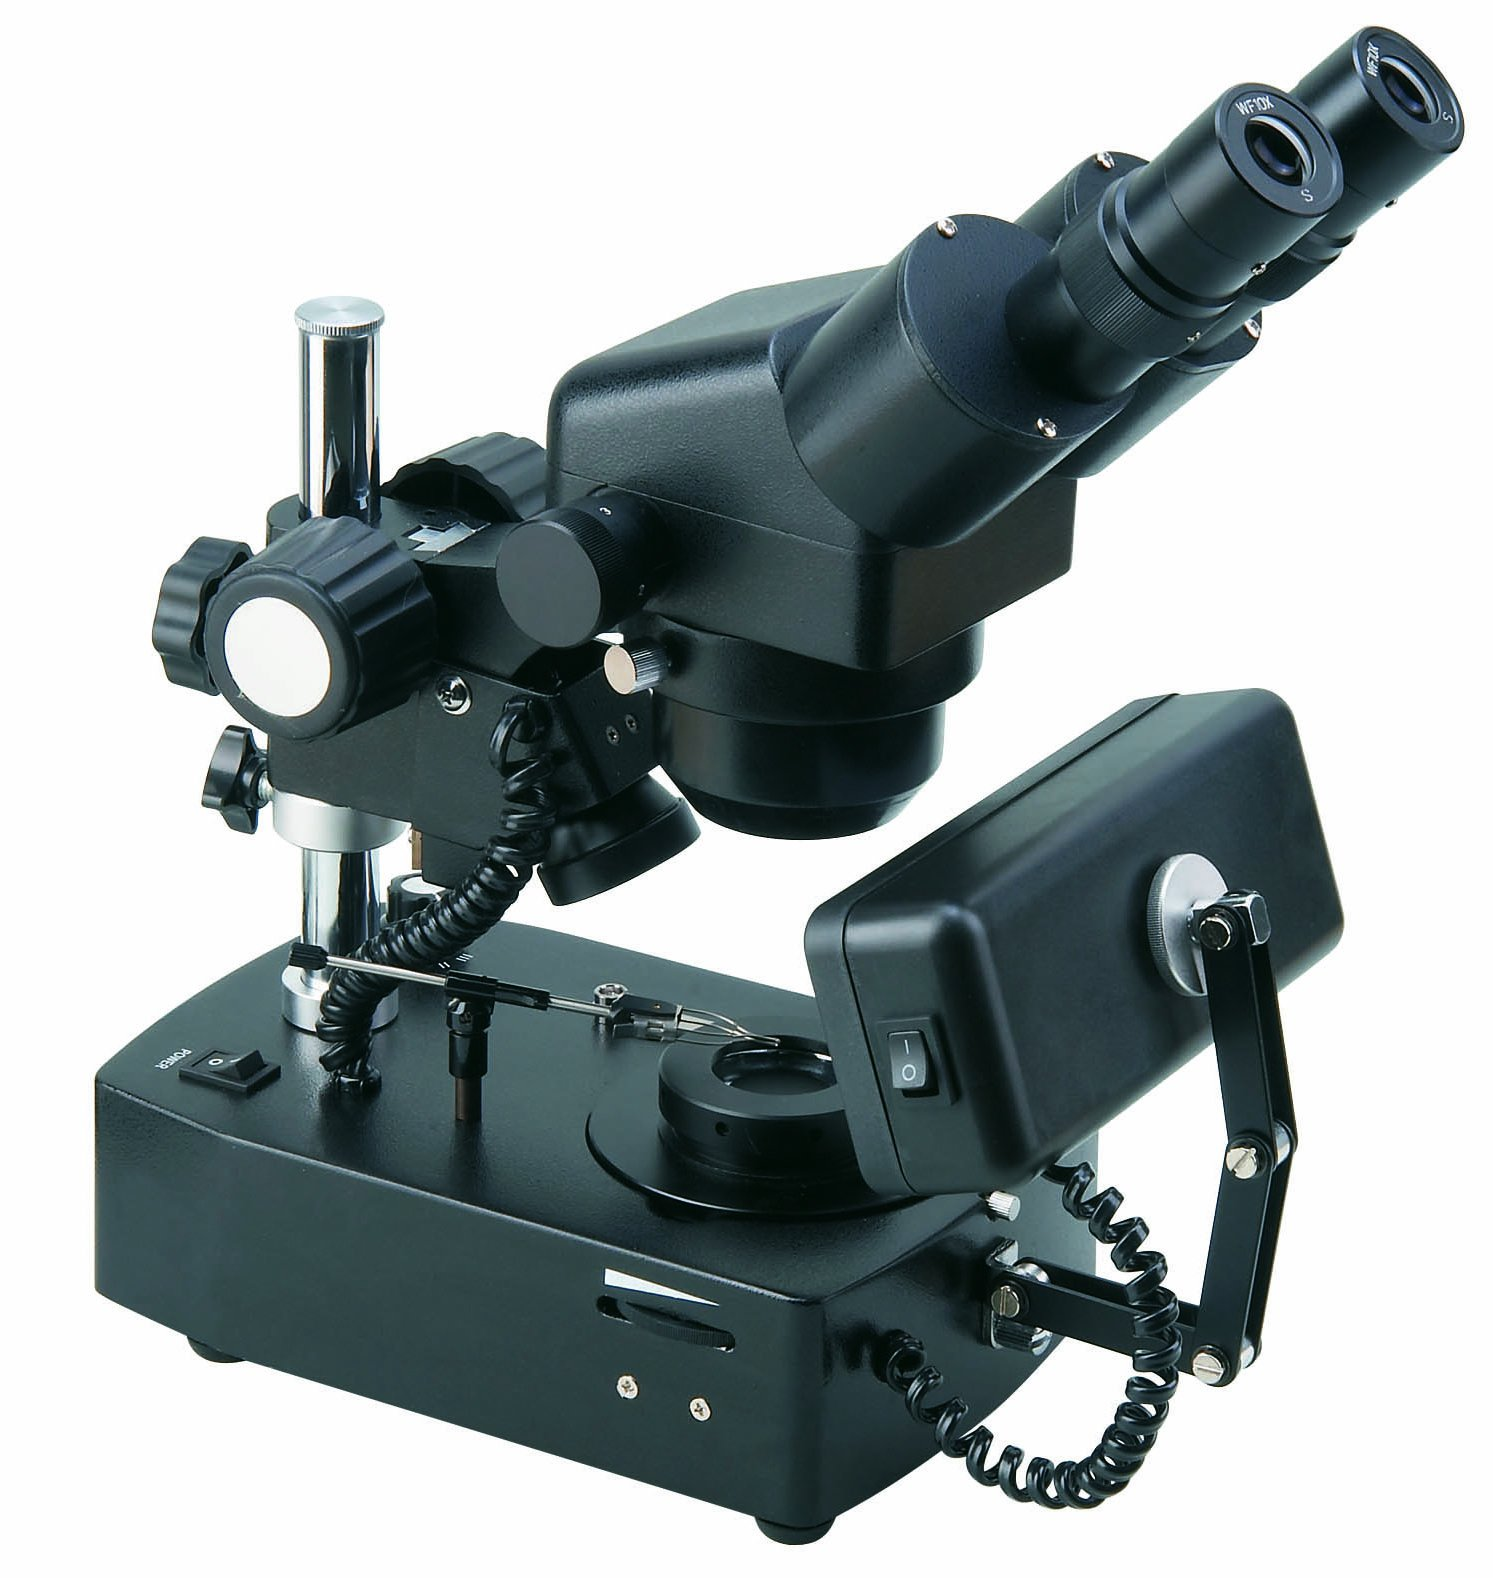 BestScope BS-8030B Gemological Binocular Zoom Microscope, WF10x Eyepieces, 20x-40x Magnification, Brightfield and Darkfield Illumination, Halogen and Fluorescent Light Sources, 110V by BestScope